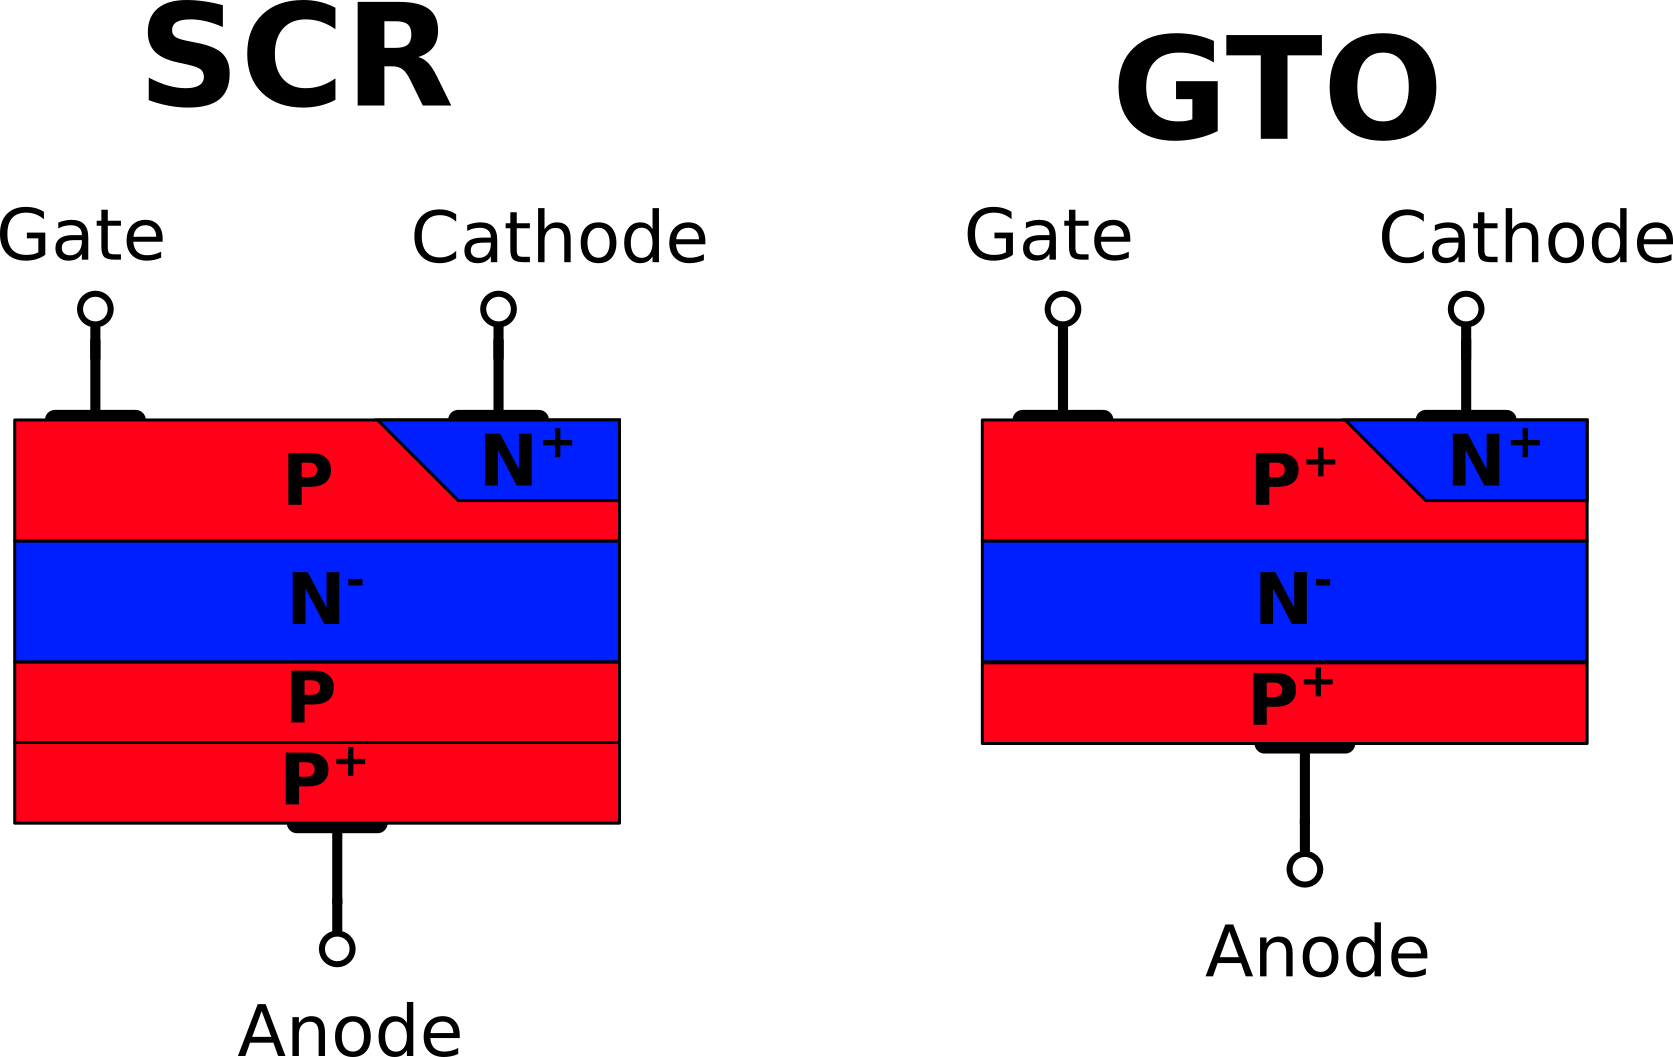 Switch Wiring Diagram Likewise Grote Turn Signal Switch Wiring Diagram